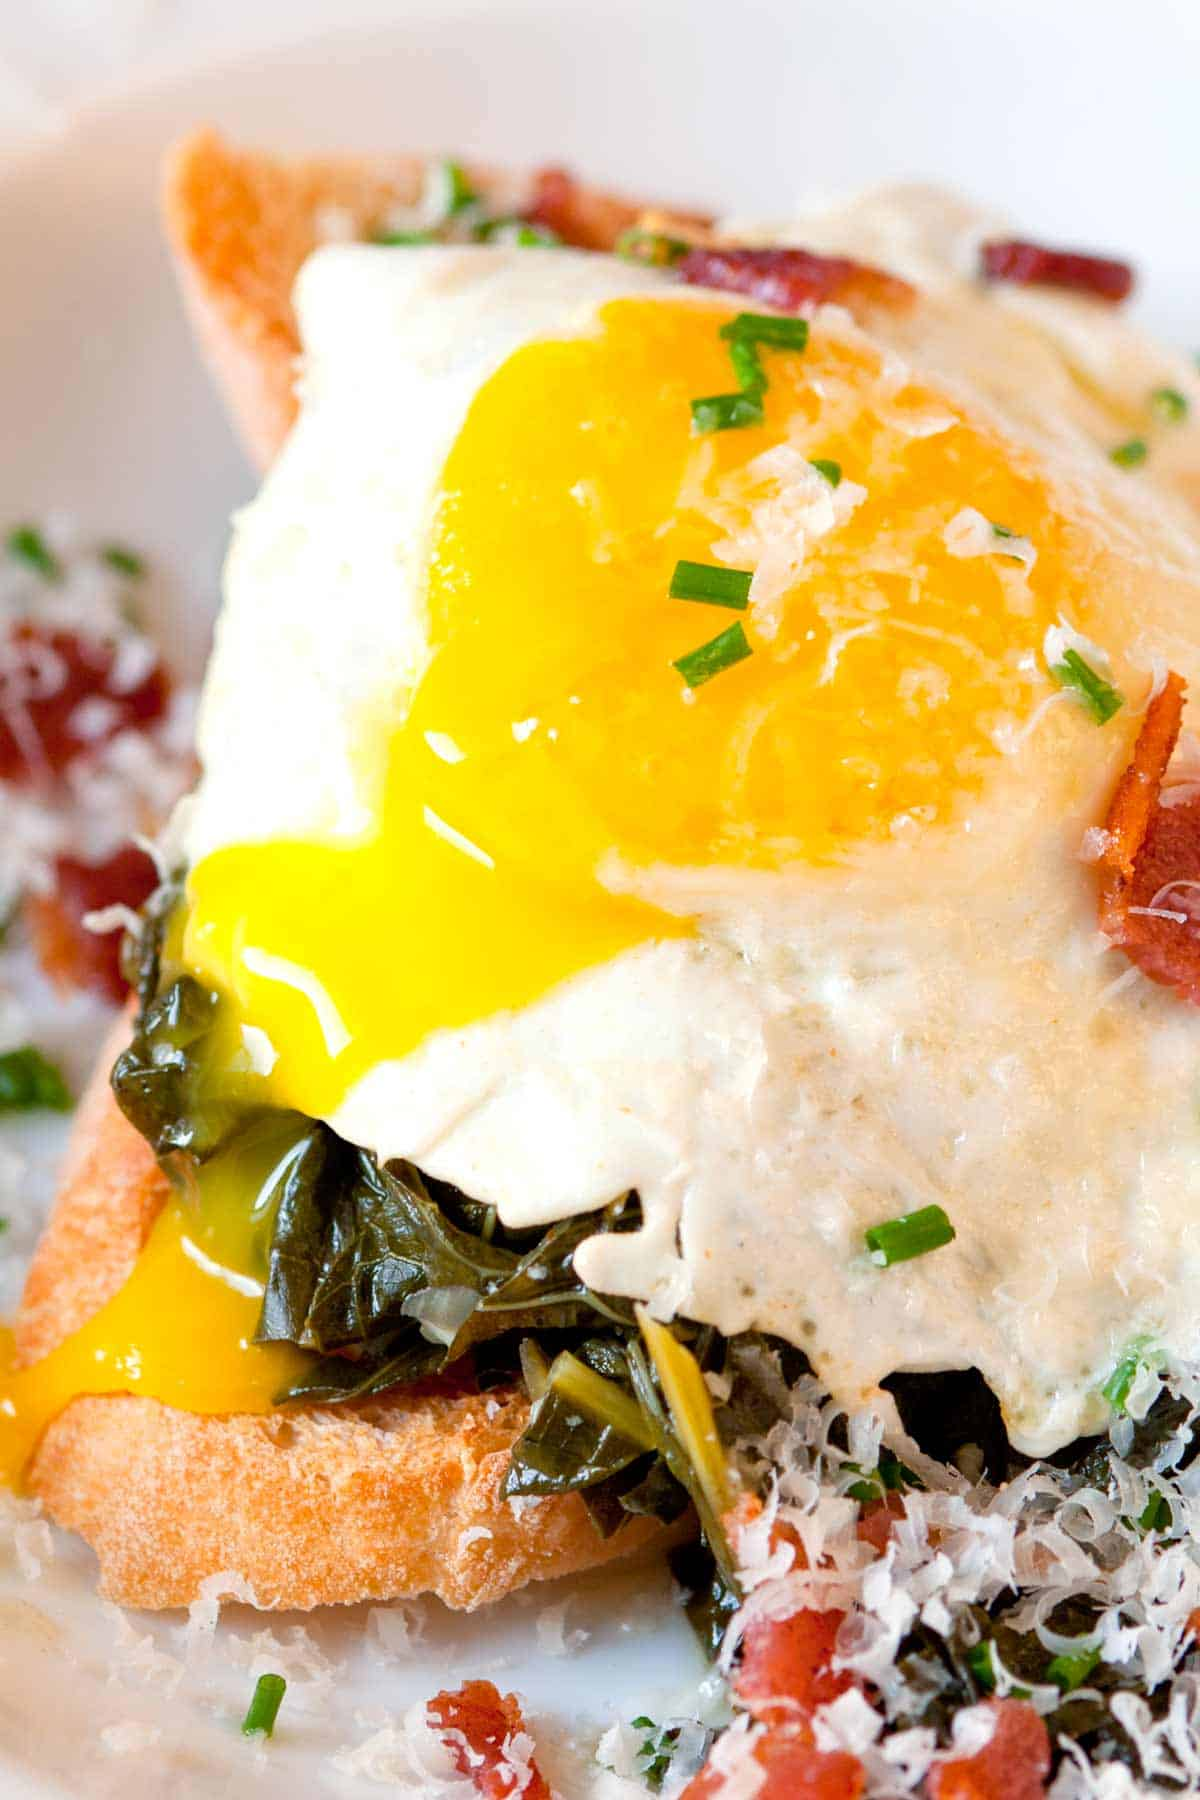 How to Make Braised Kale Toasts with Egg and Bacon